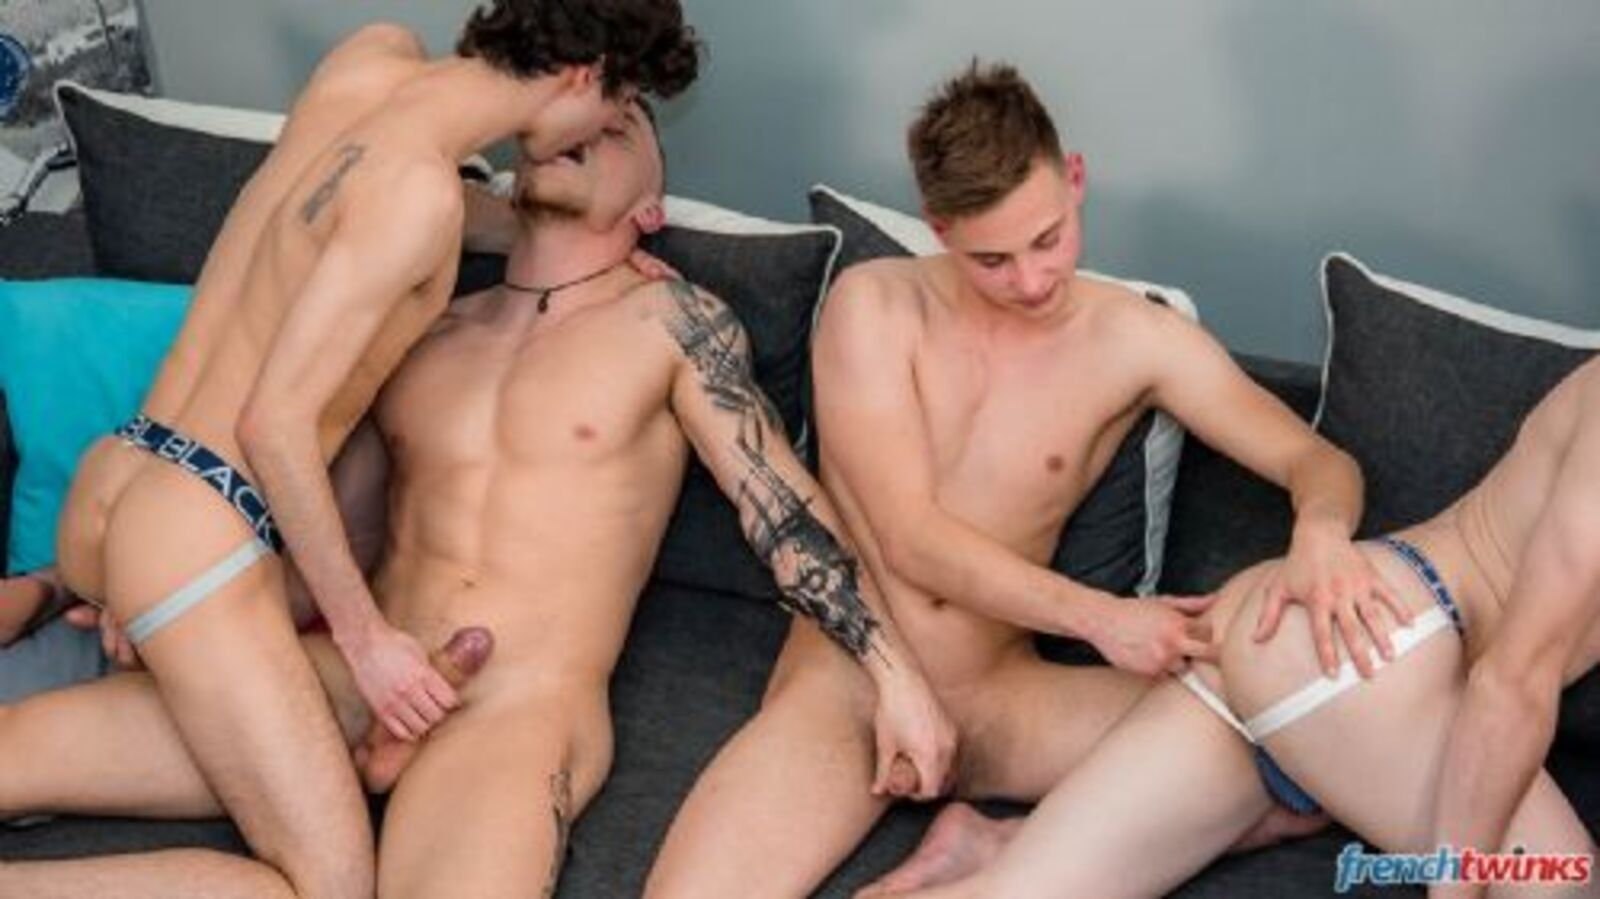 FRENCHTWINKS 240818-12